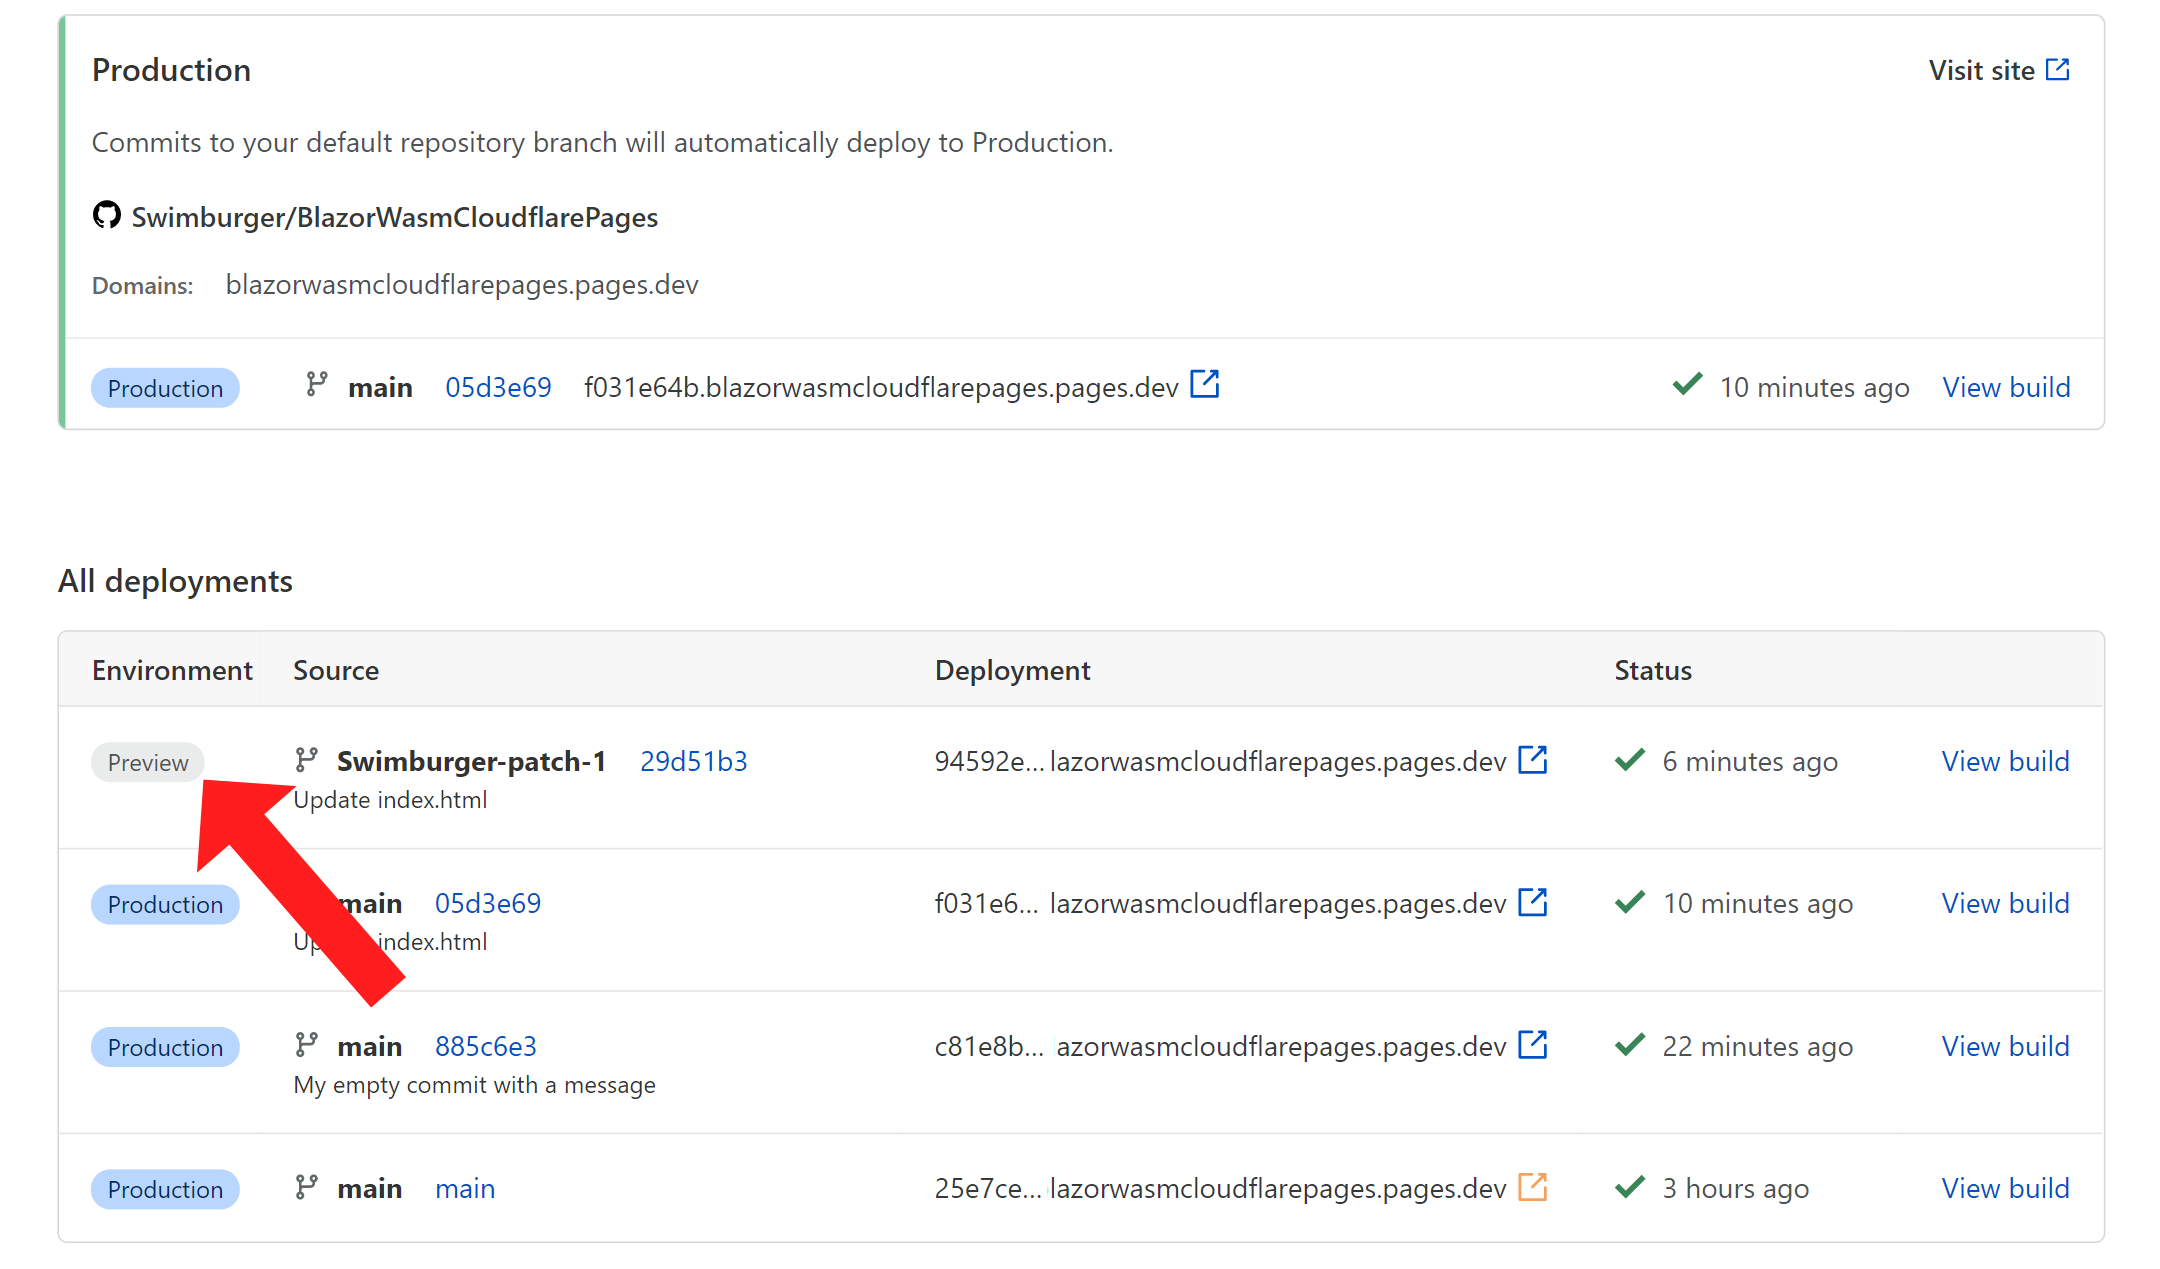 Screenshot of a preview build & deploy on Cloudflare pages